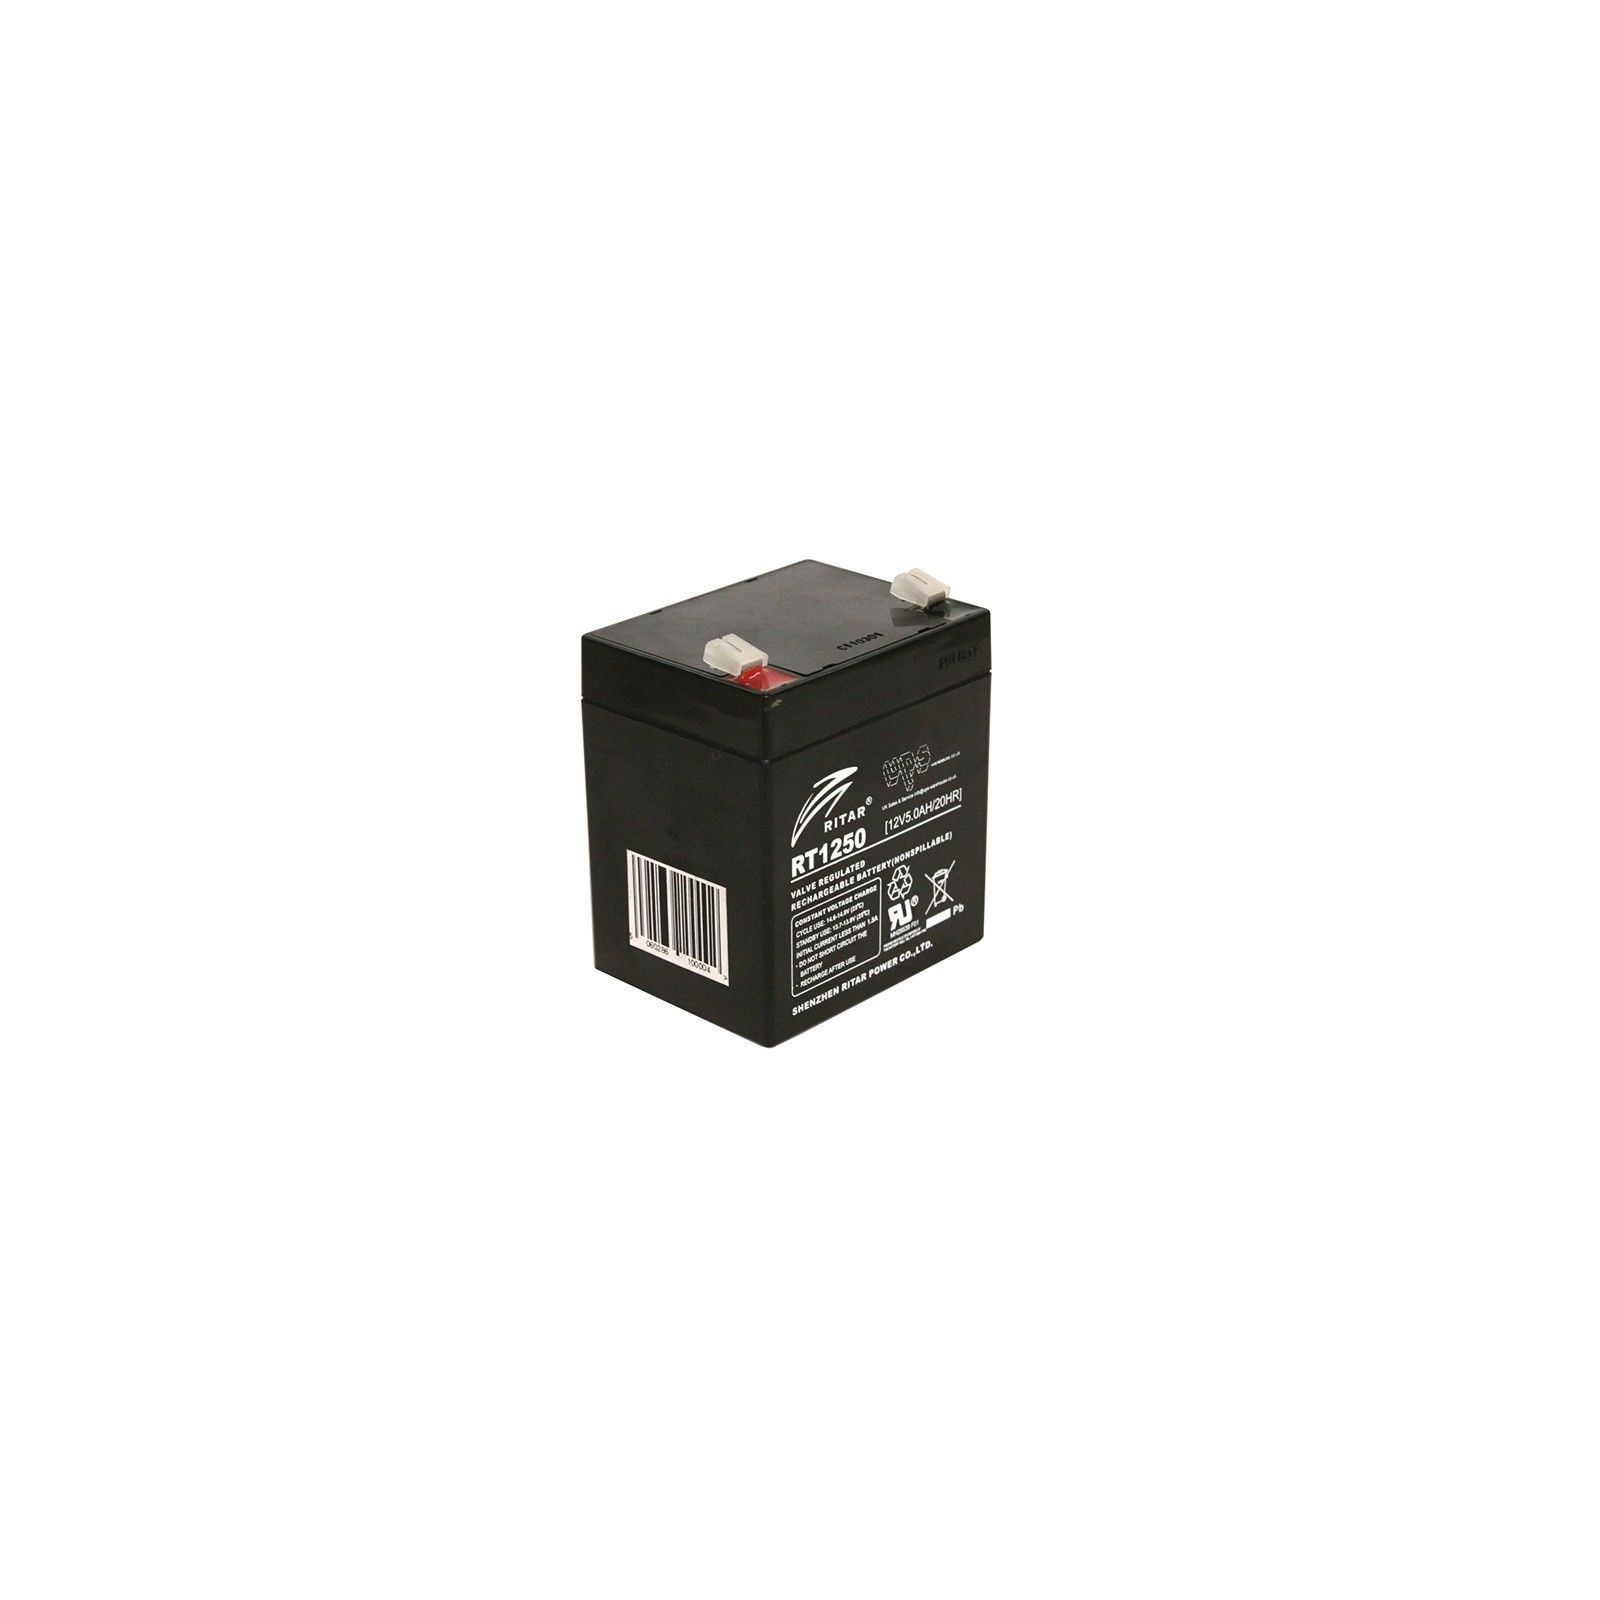 BATTERY MK POWERED AGM ES5-12 12V 5AH  - 1